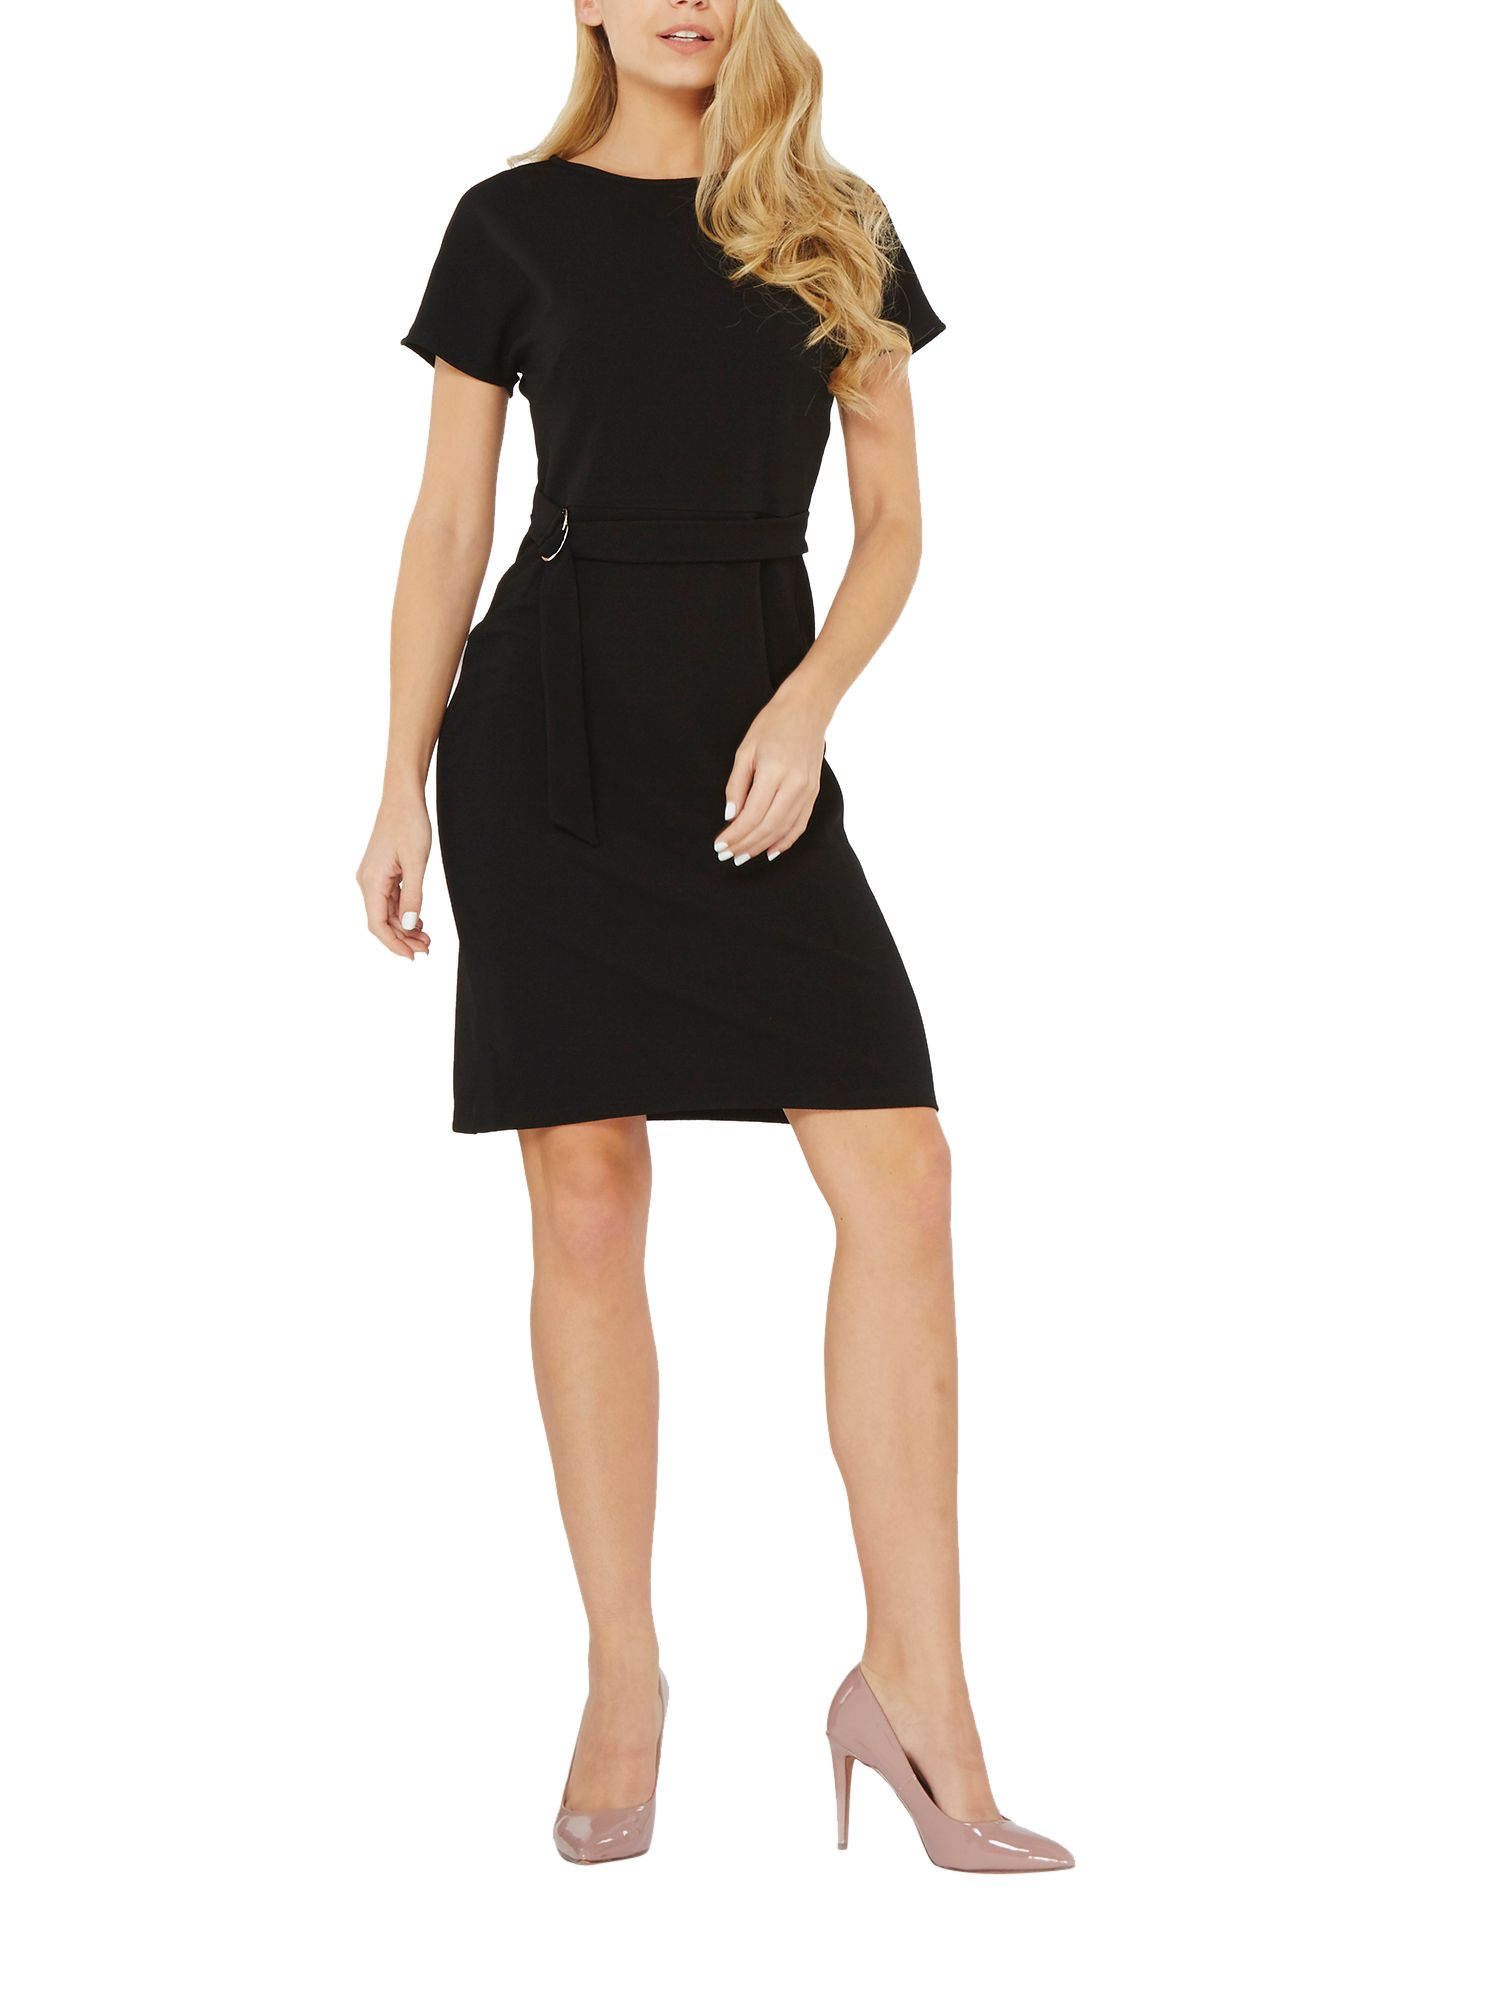 Dressing Perkin Castorama Excellent Dorothy Perkins Dring Pencil Dress With Dressing